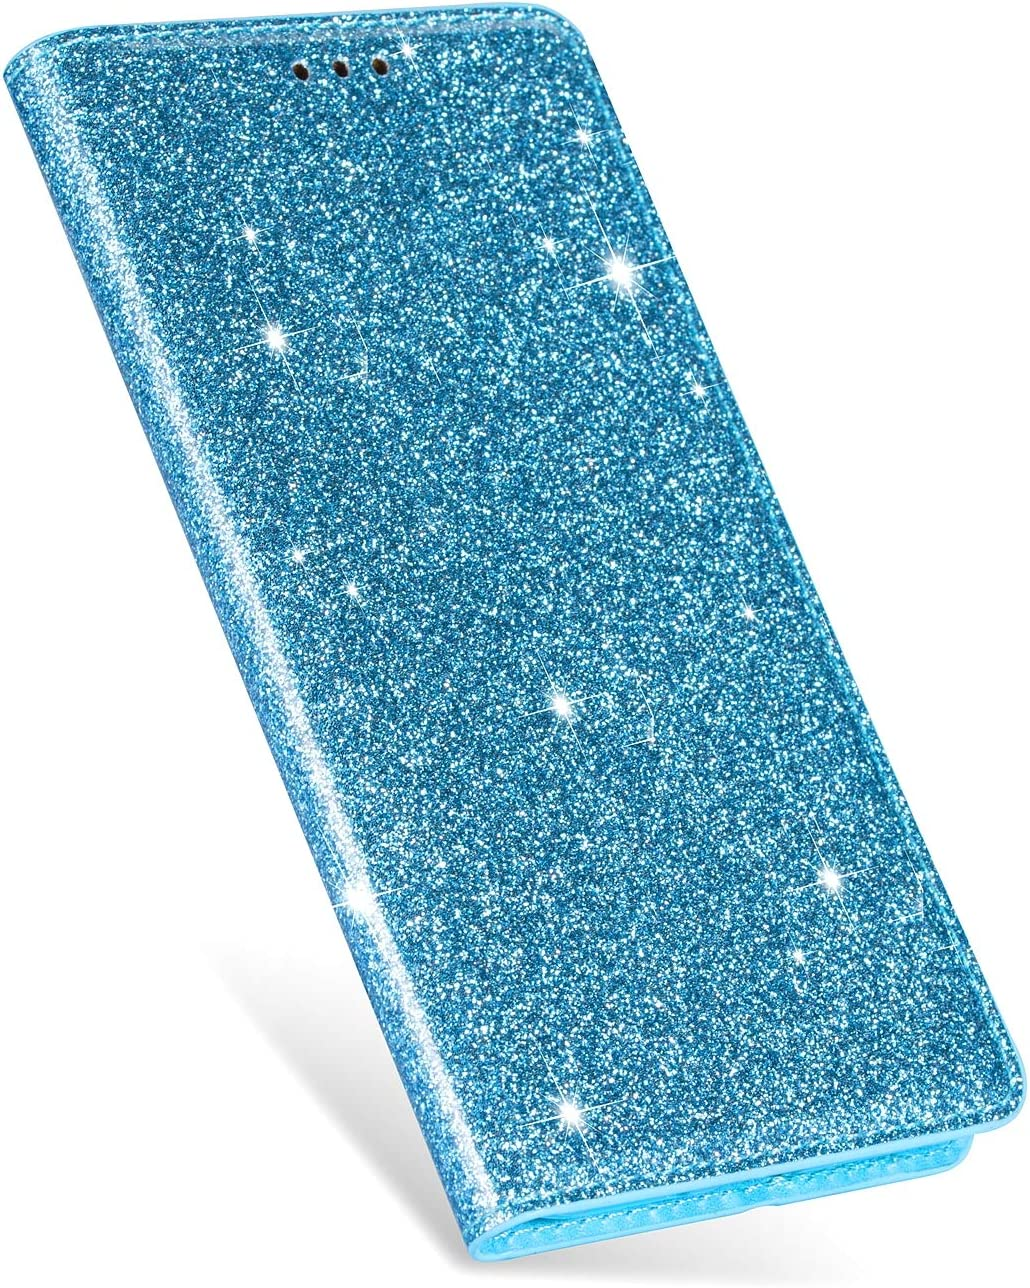 Samsung Galaxy A71 Case Glitter Solid Sparkly Wallet Flip Case for Women PU Leather Card Slots Stand Magnetic Folio Silicone Bumper Gel Shockproof Protective Phone Cover for Galaxy A71 Deep Pink